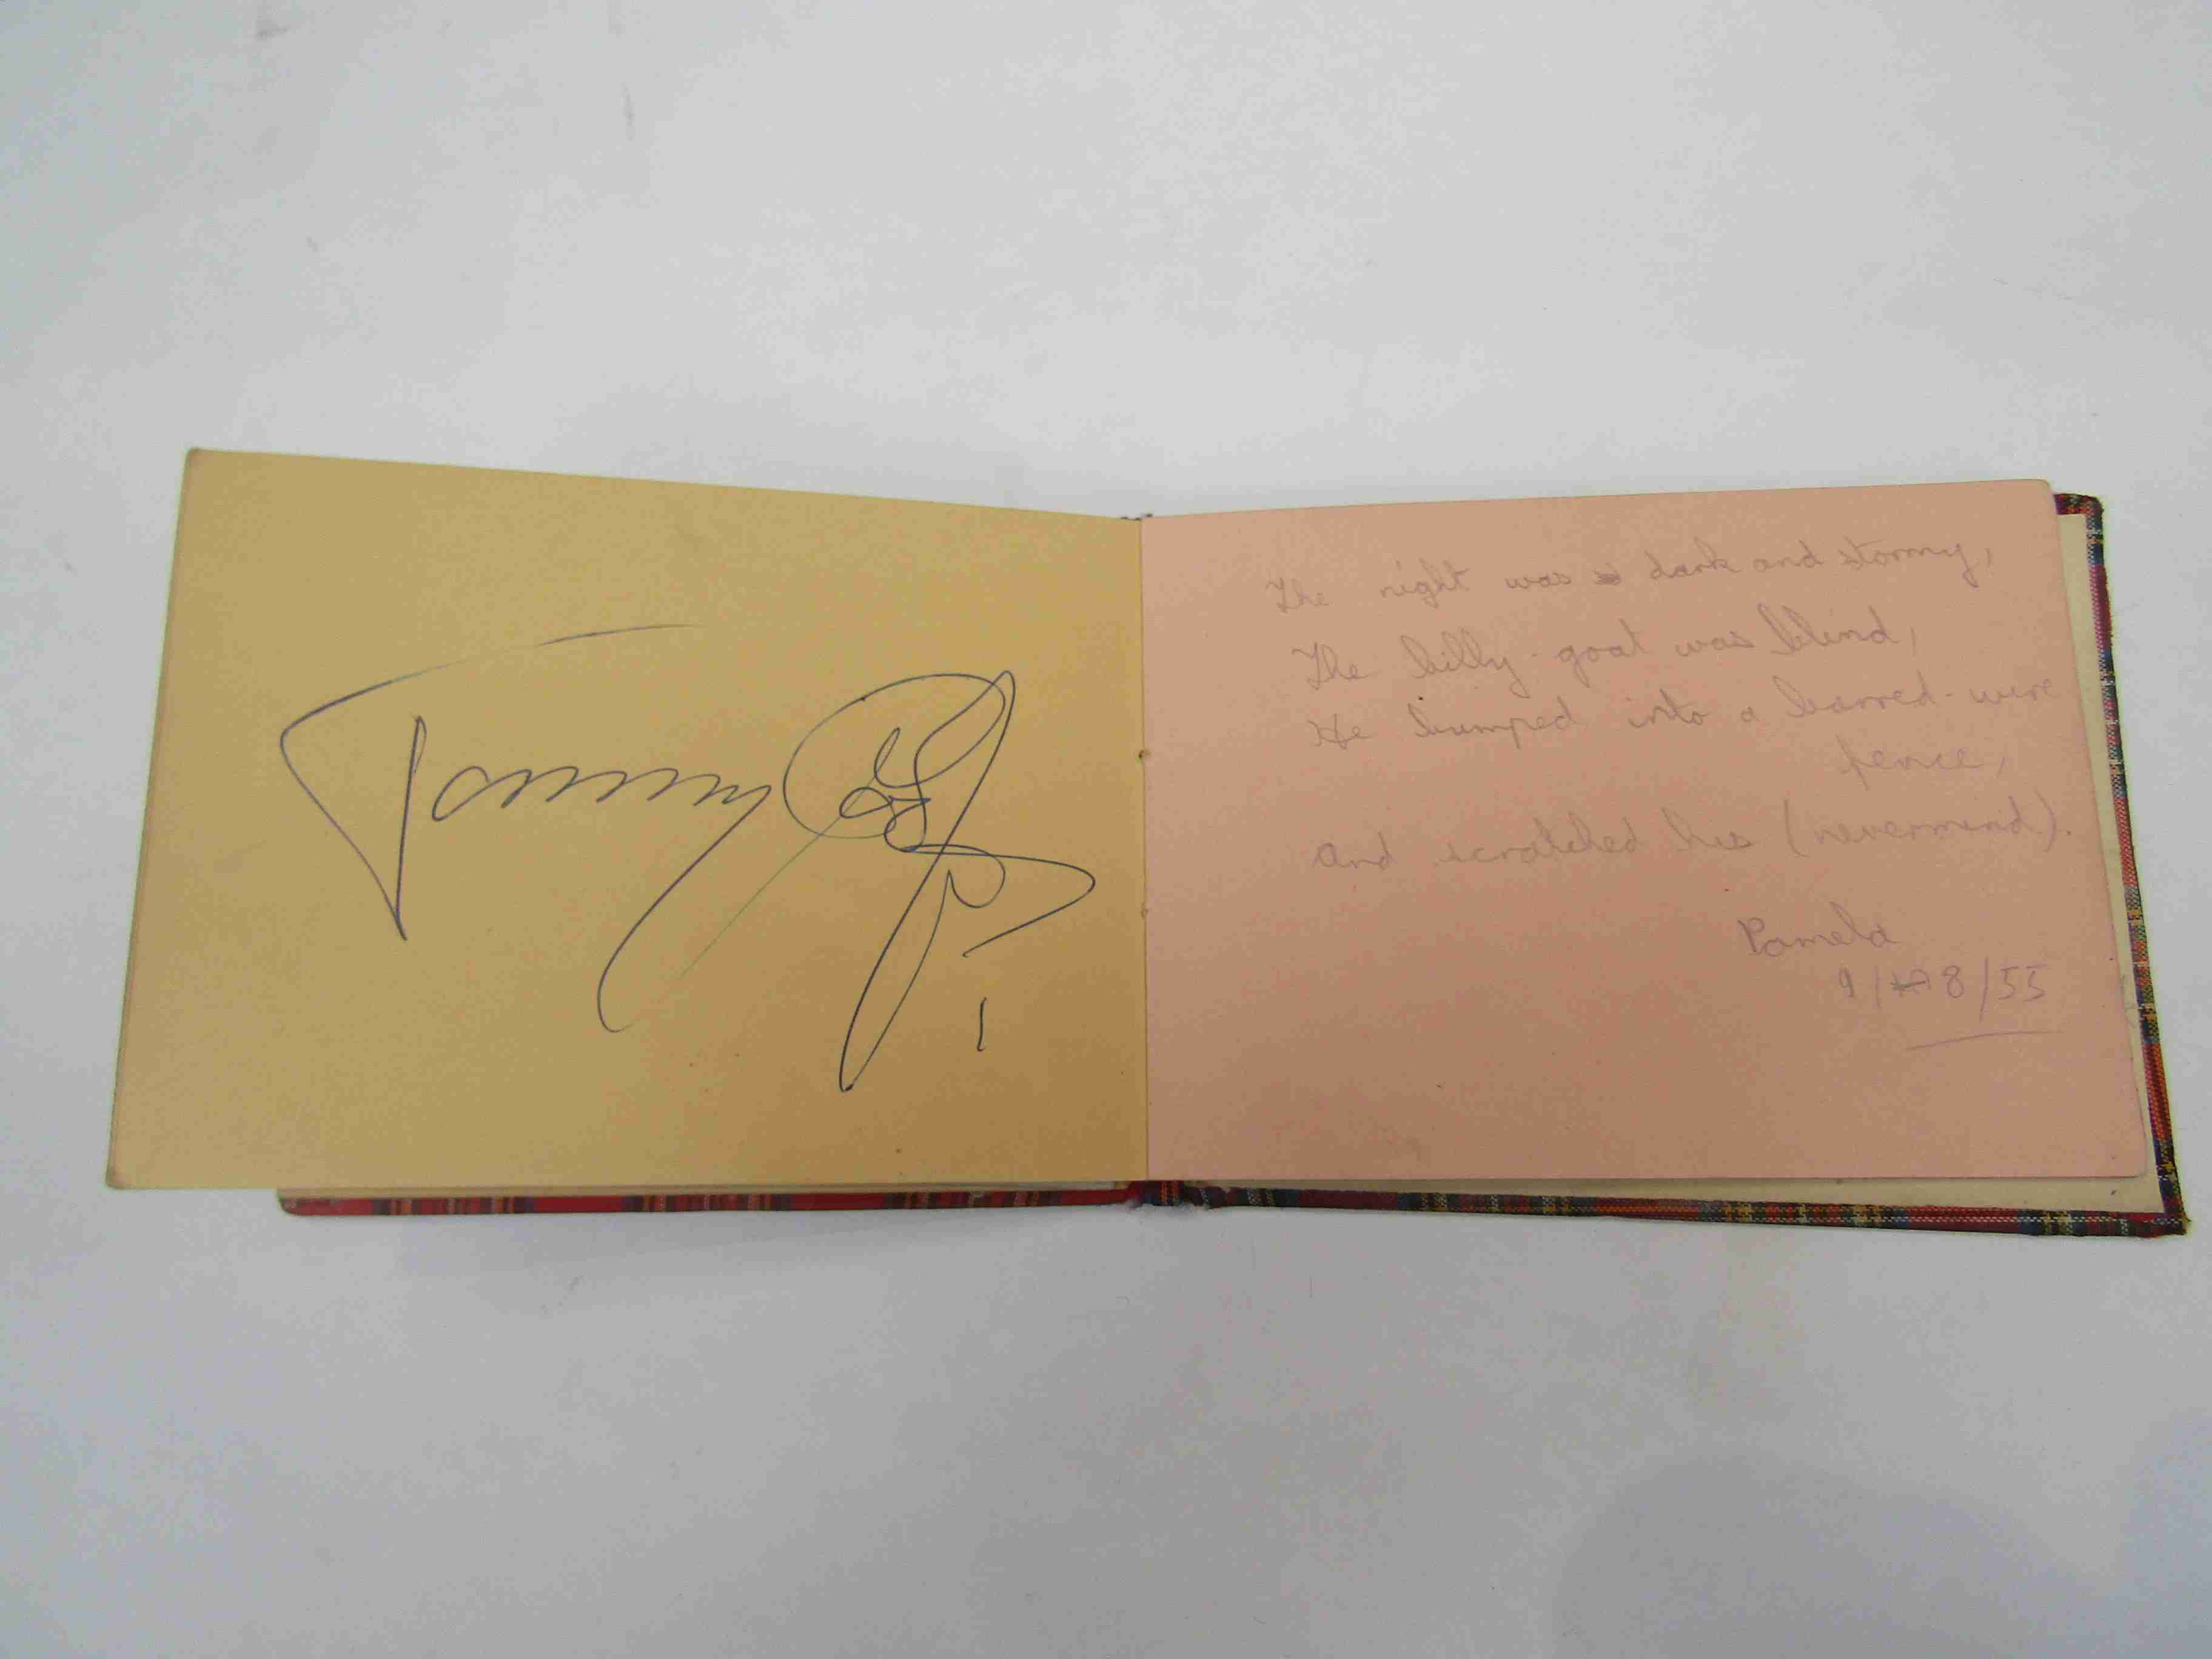 Two 1950s/60s autograph books containing autographs by Benny Hill, Honor Blackman, Barbara Shelley, - Image 29 of 34